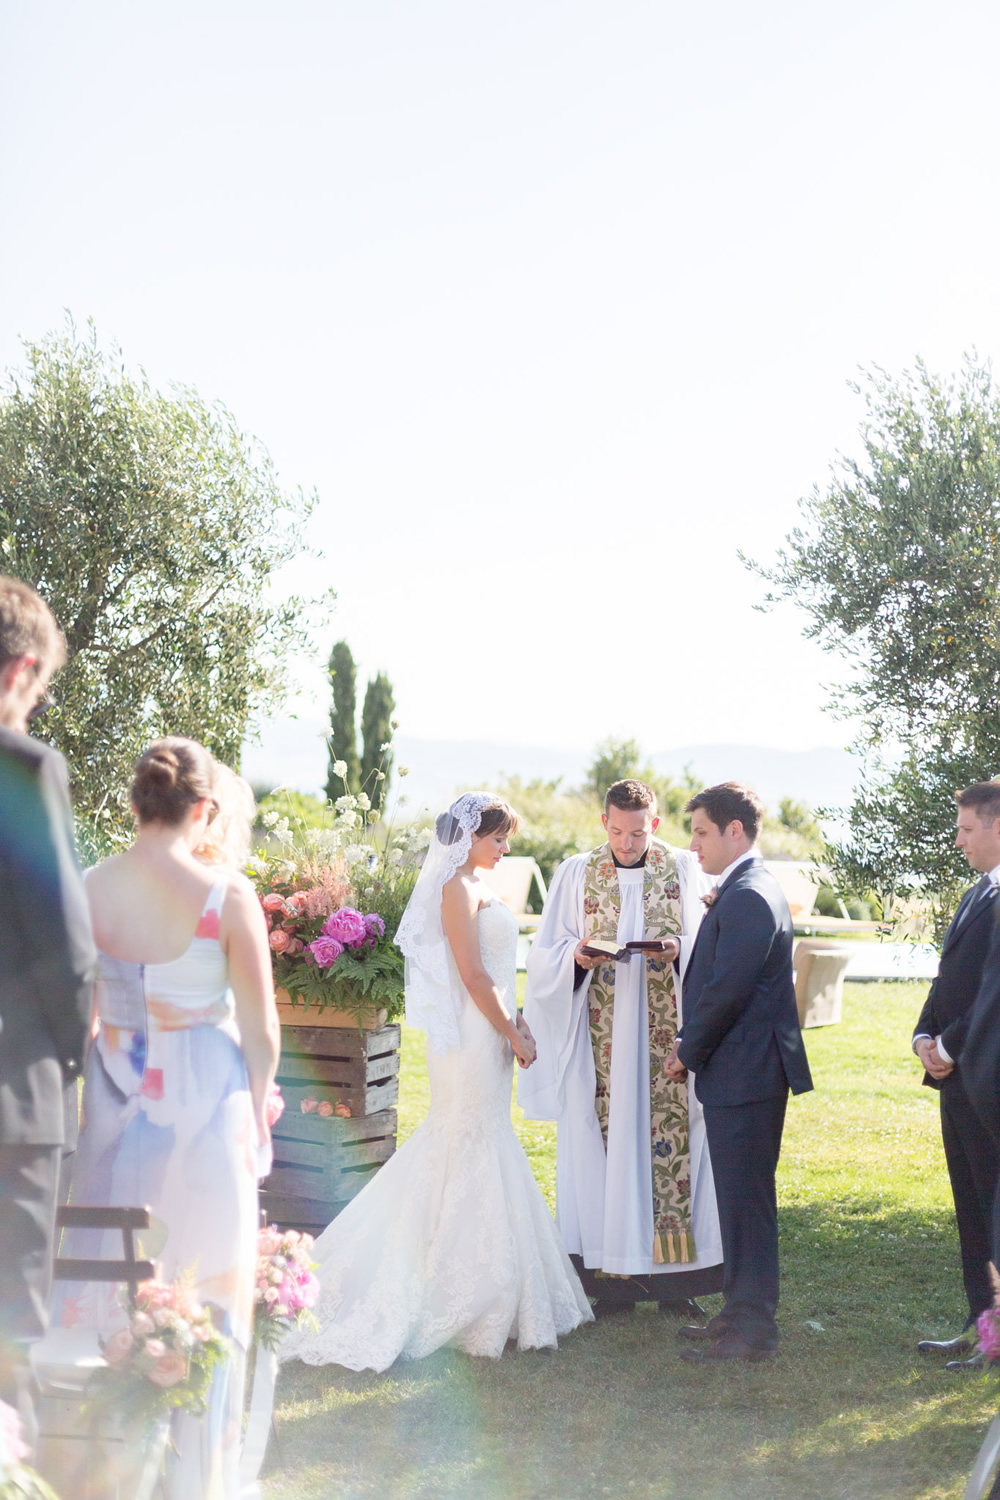 Getting married in Val d'Orcia